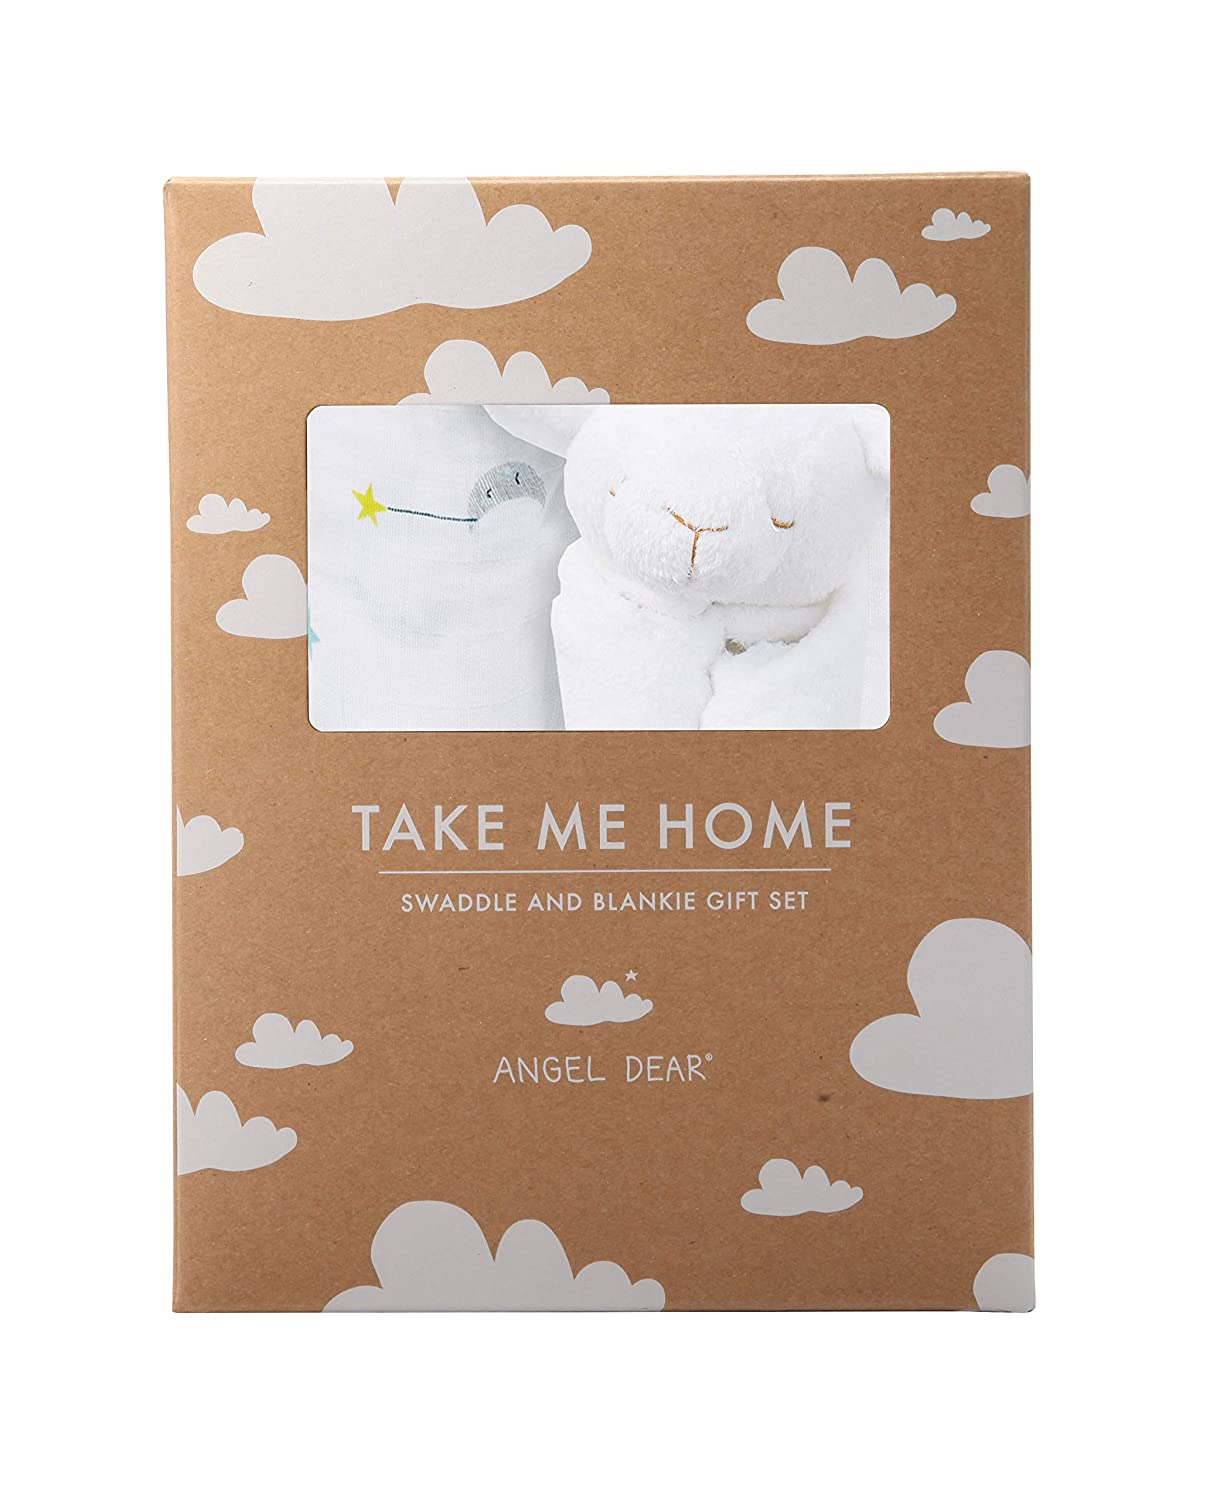 Angel Dear Swaddle and Blankie Gift Set, Starry Night with White Lamb